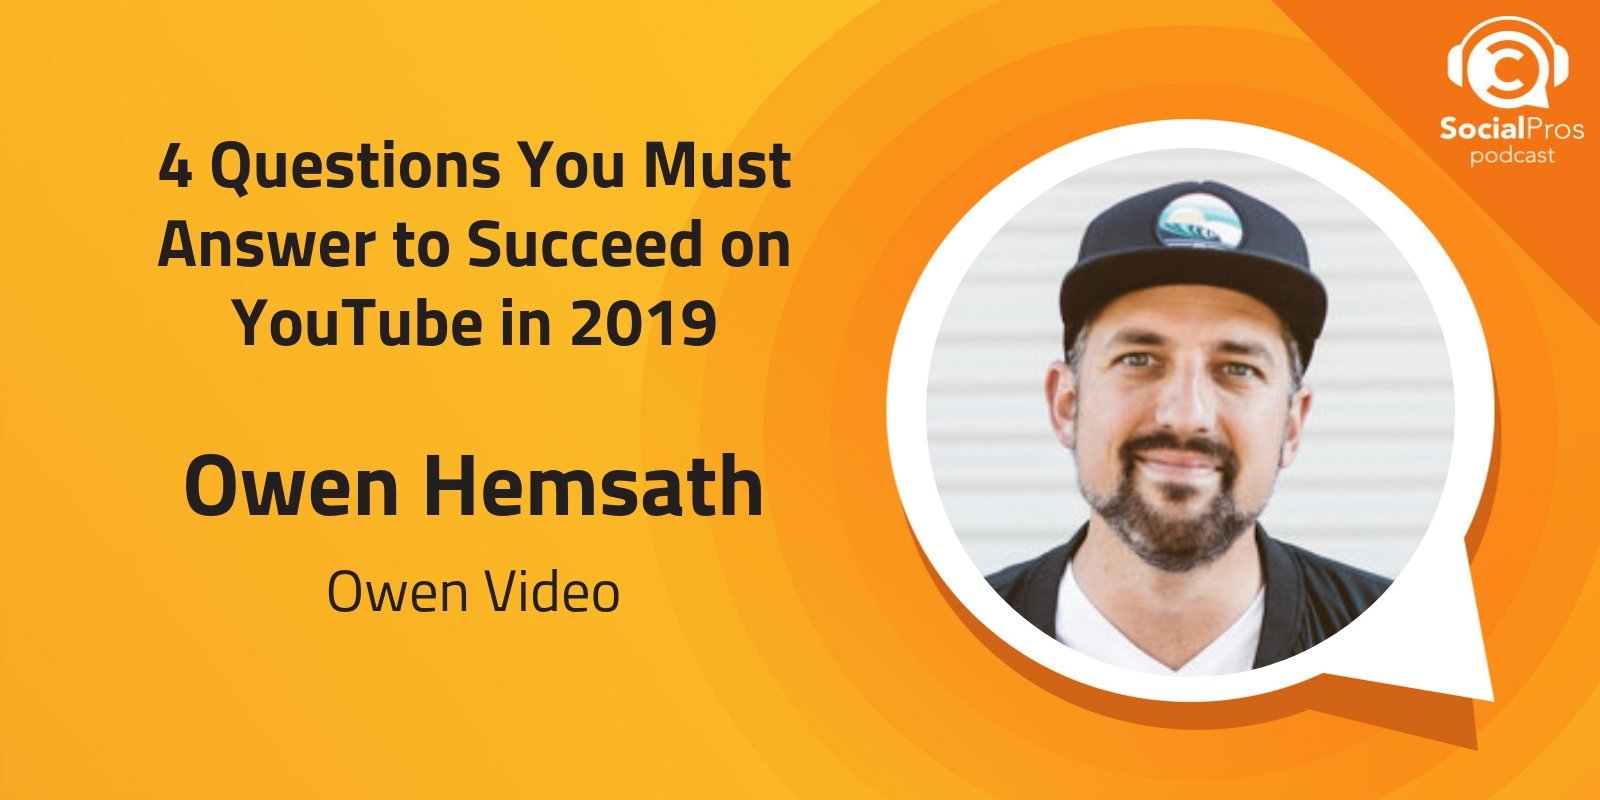 4 Questions You Must Answer to Succeed on YouTube in 2019